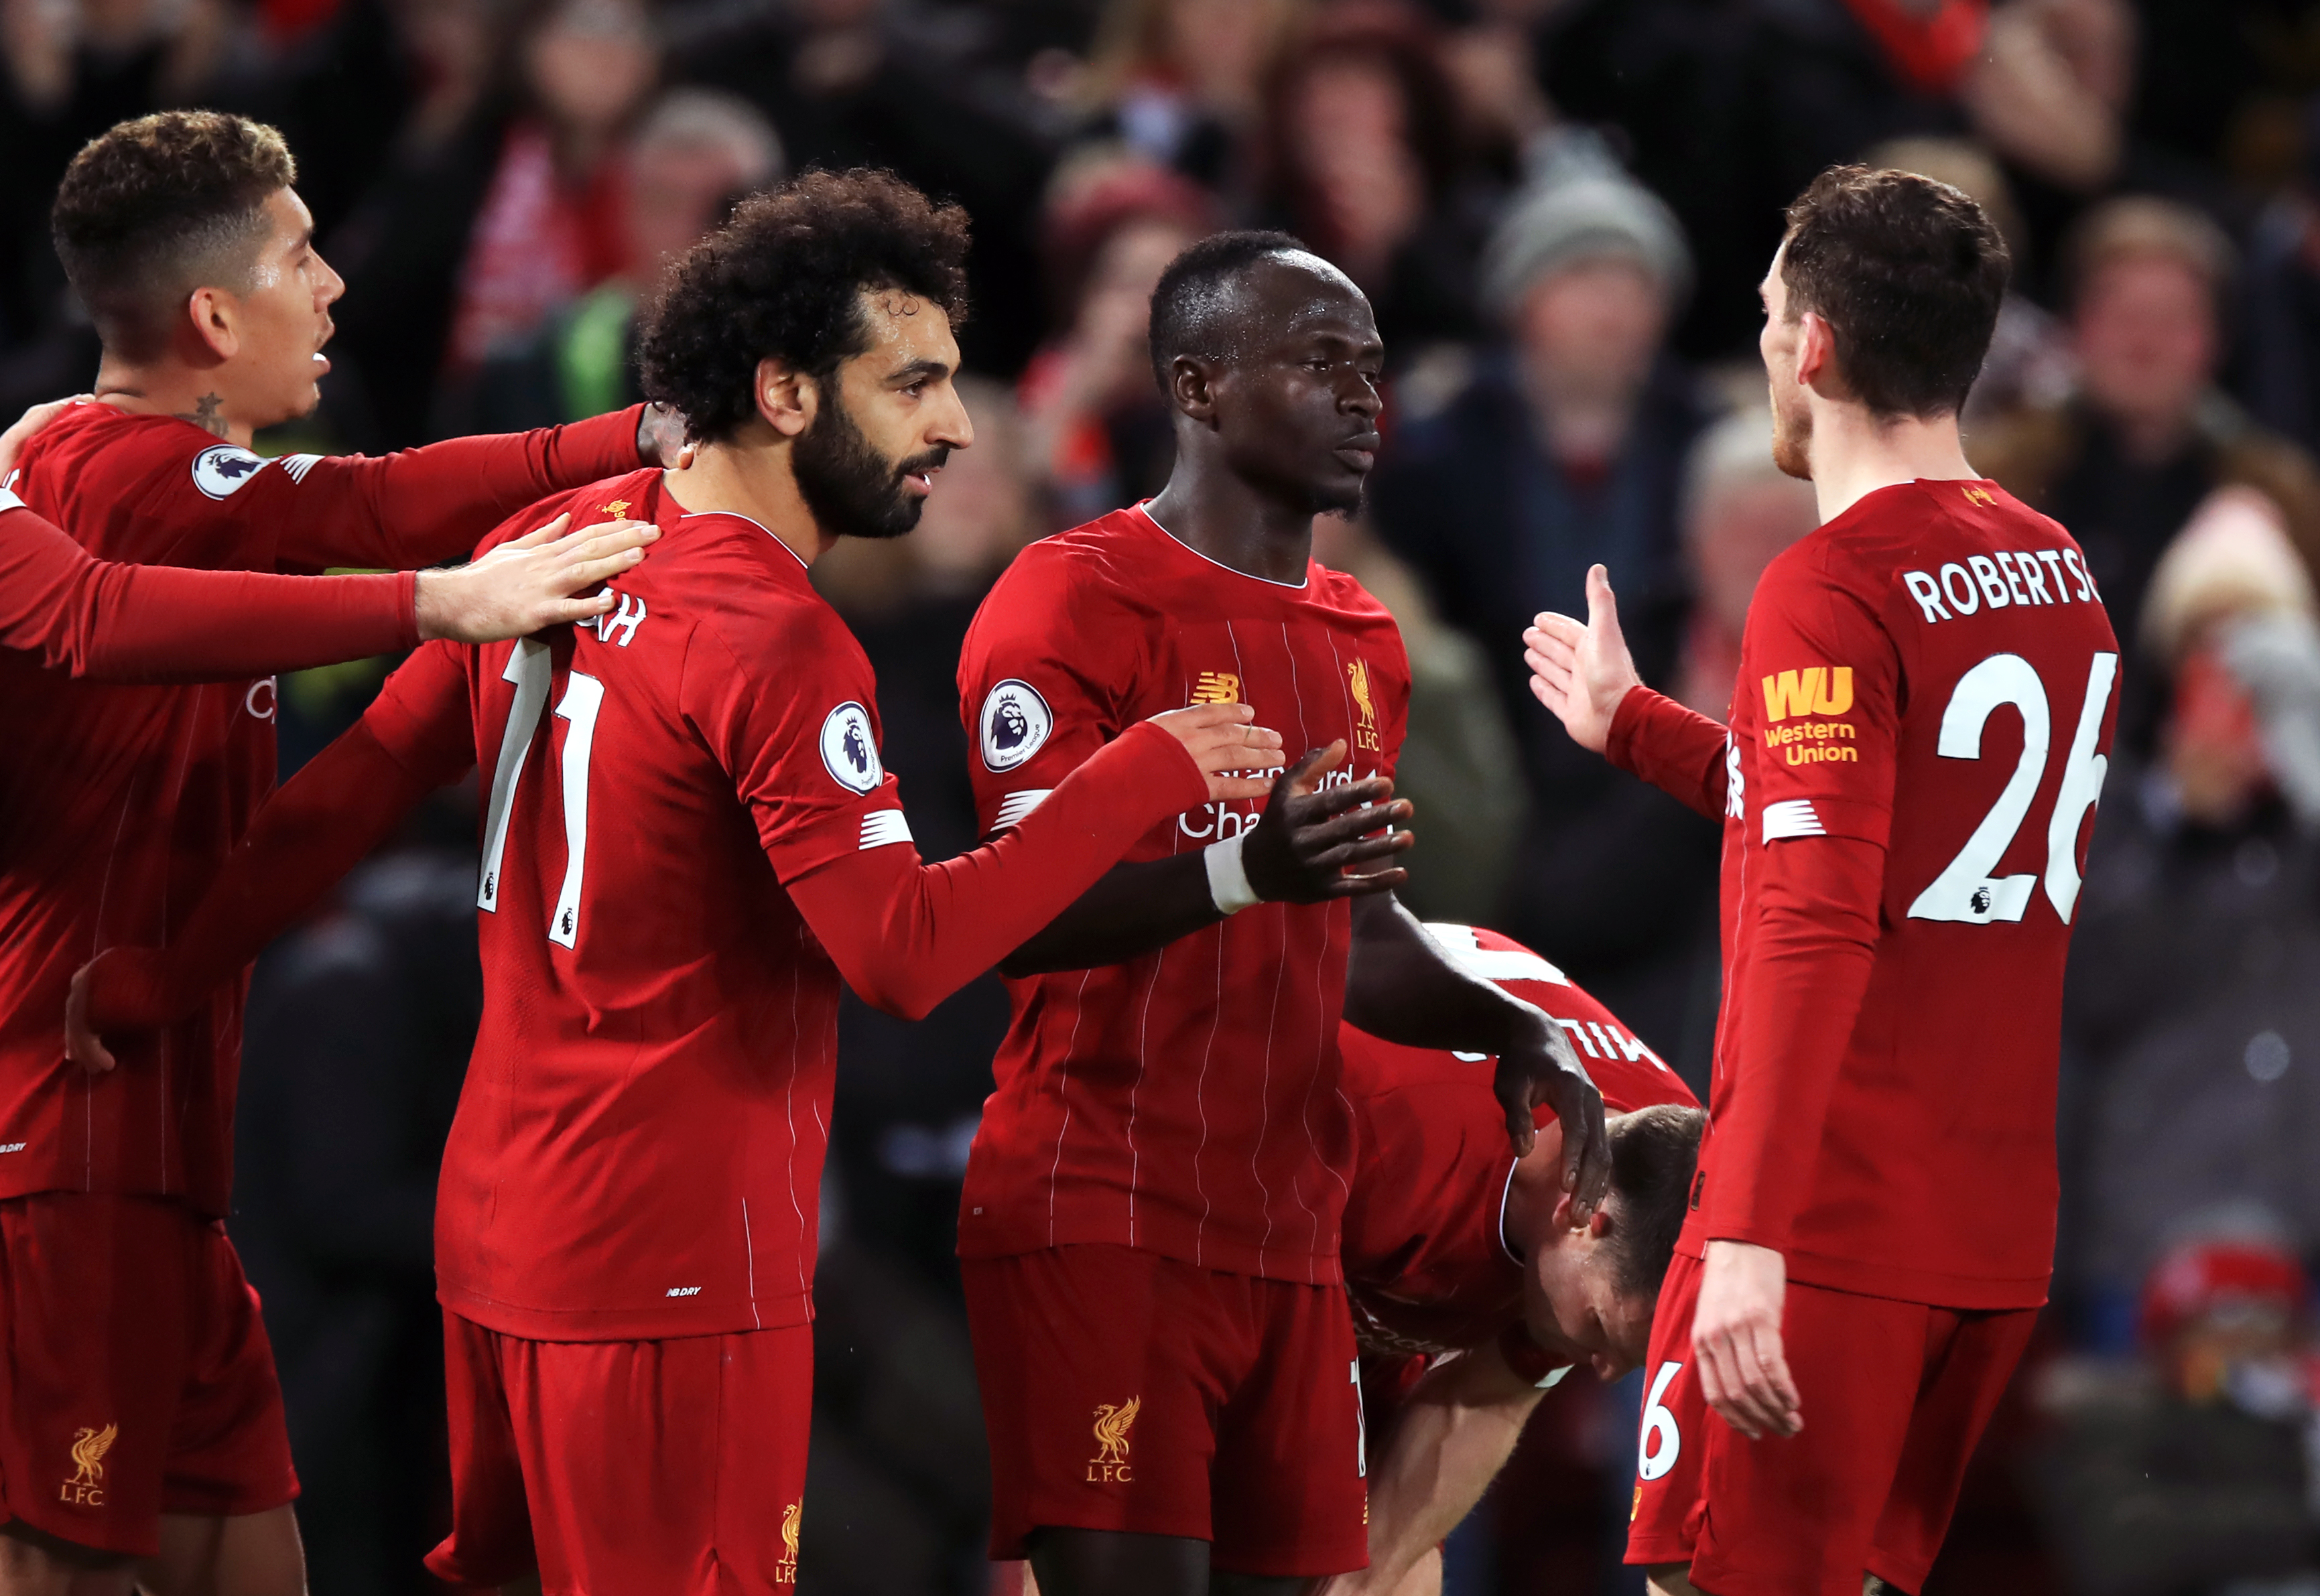 Mane reveals which player deserves to be crowned Player of the Year